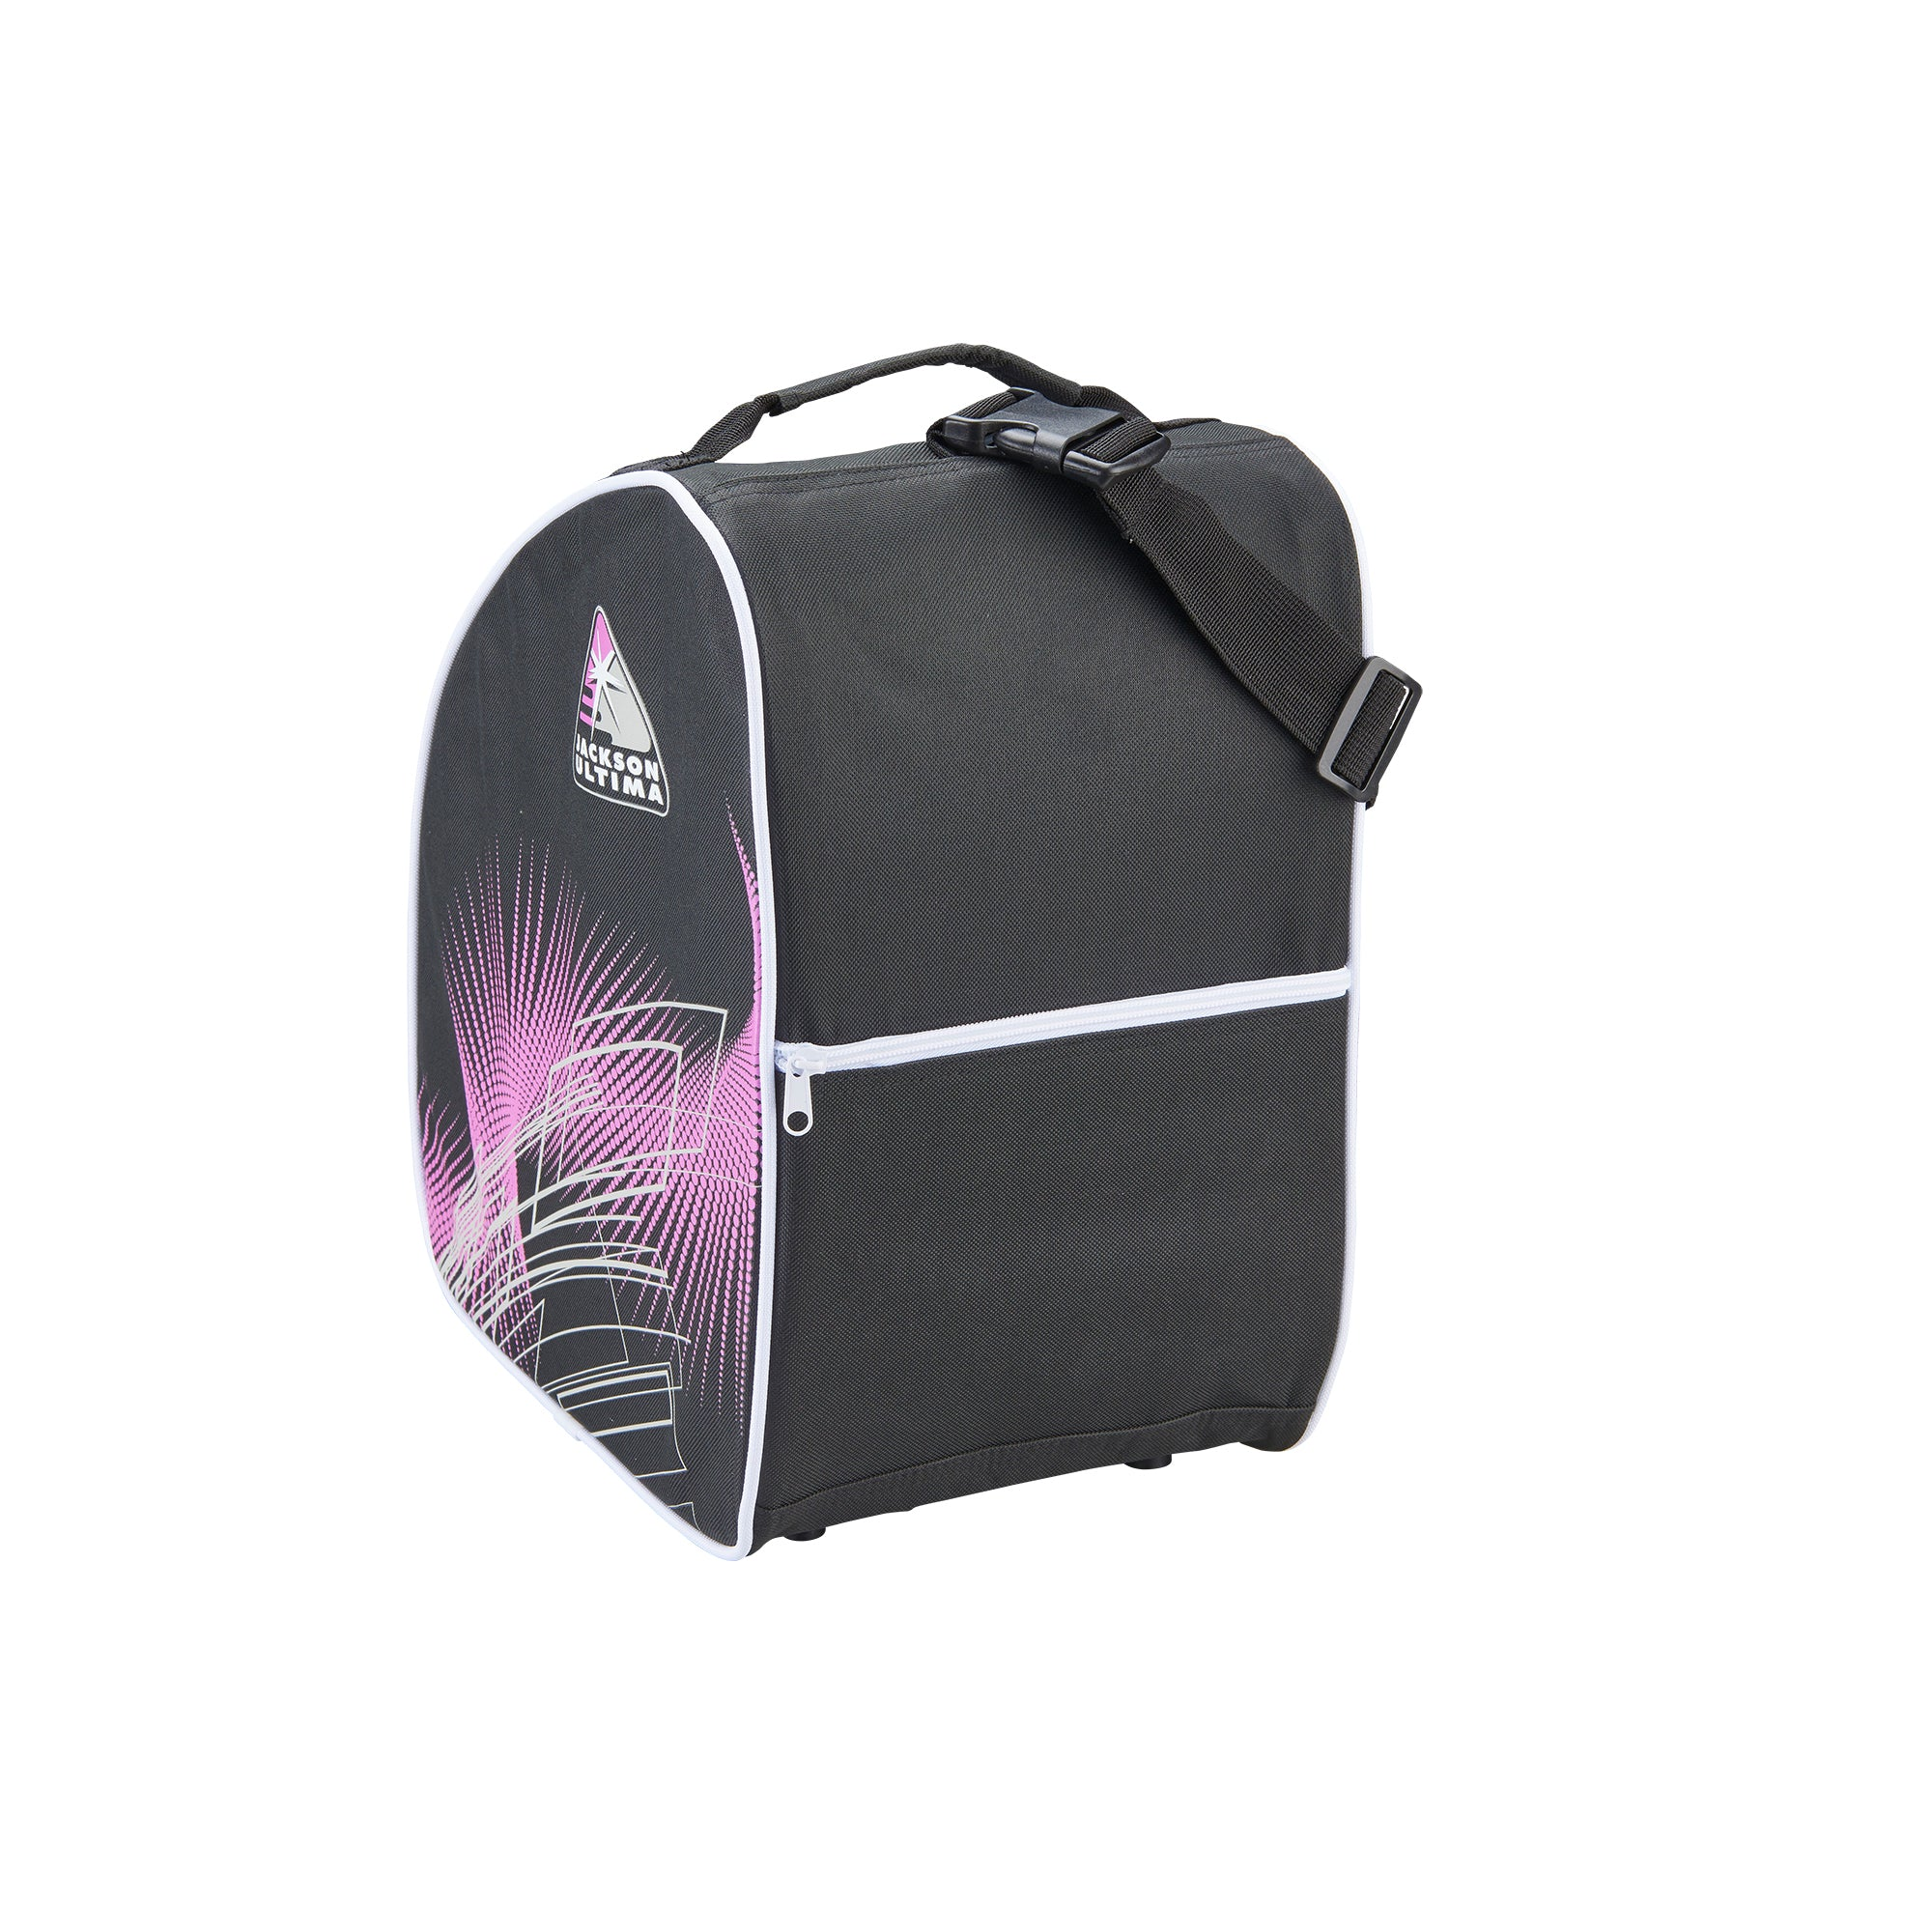 Jackson Oversized Bag<br>(Black/Purple)